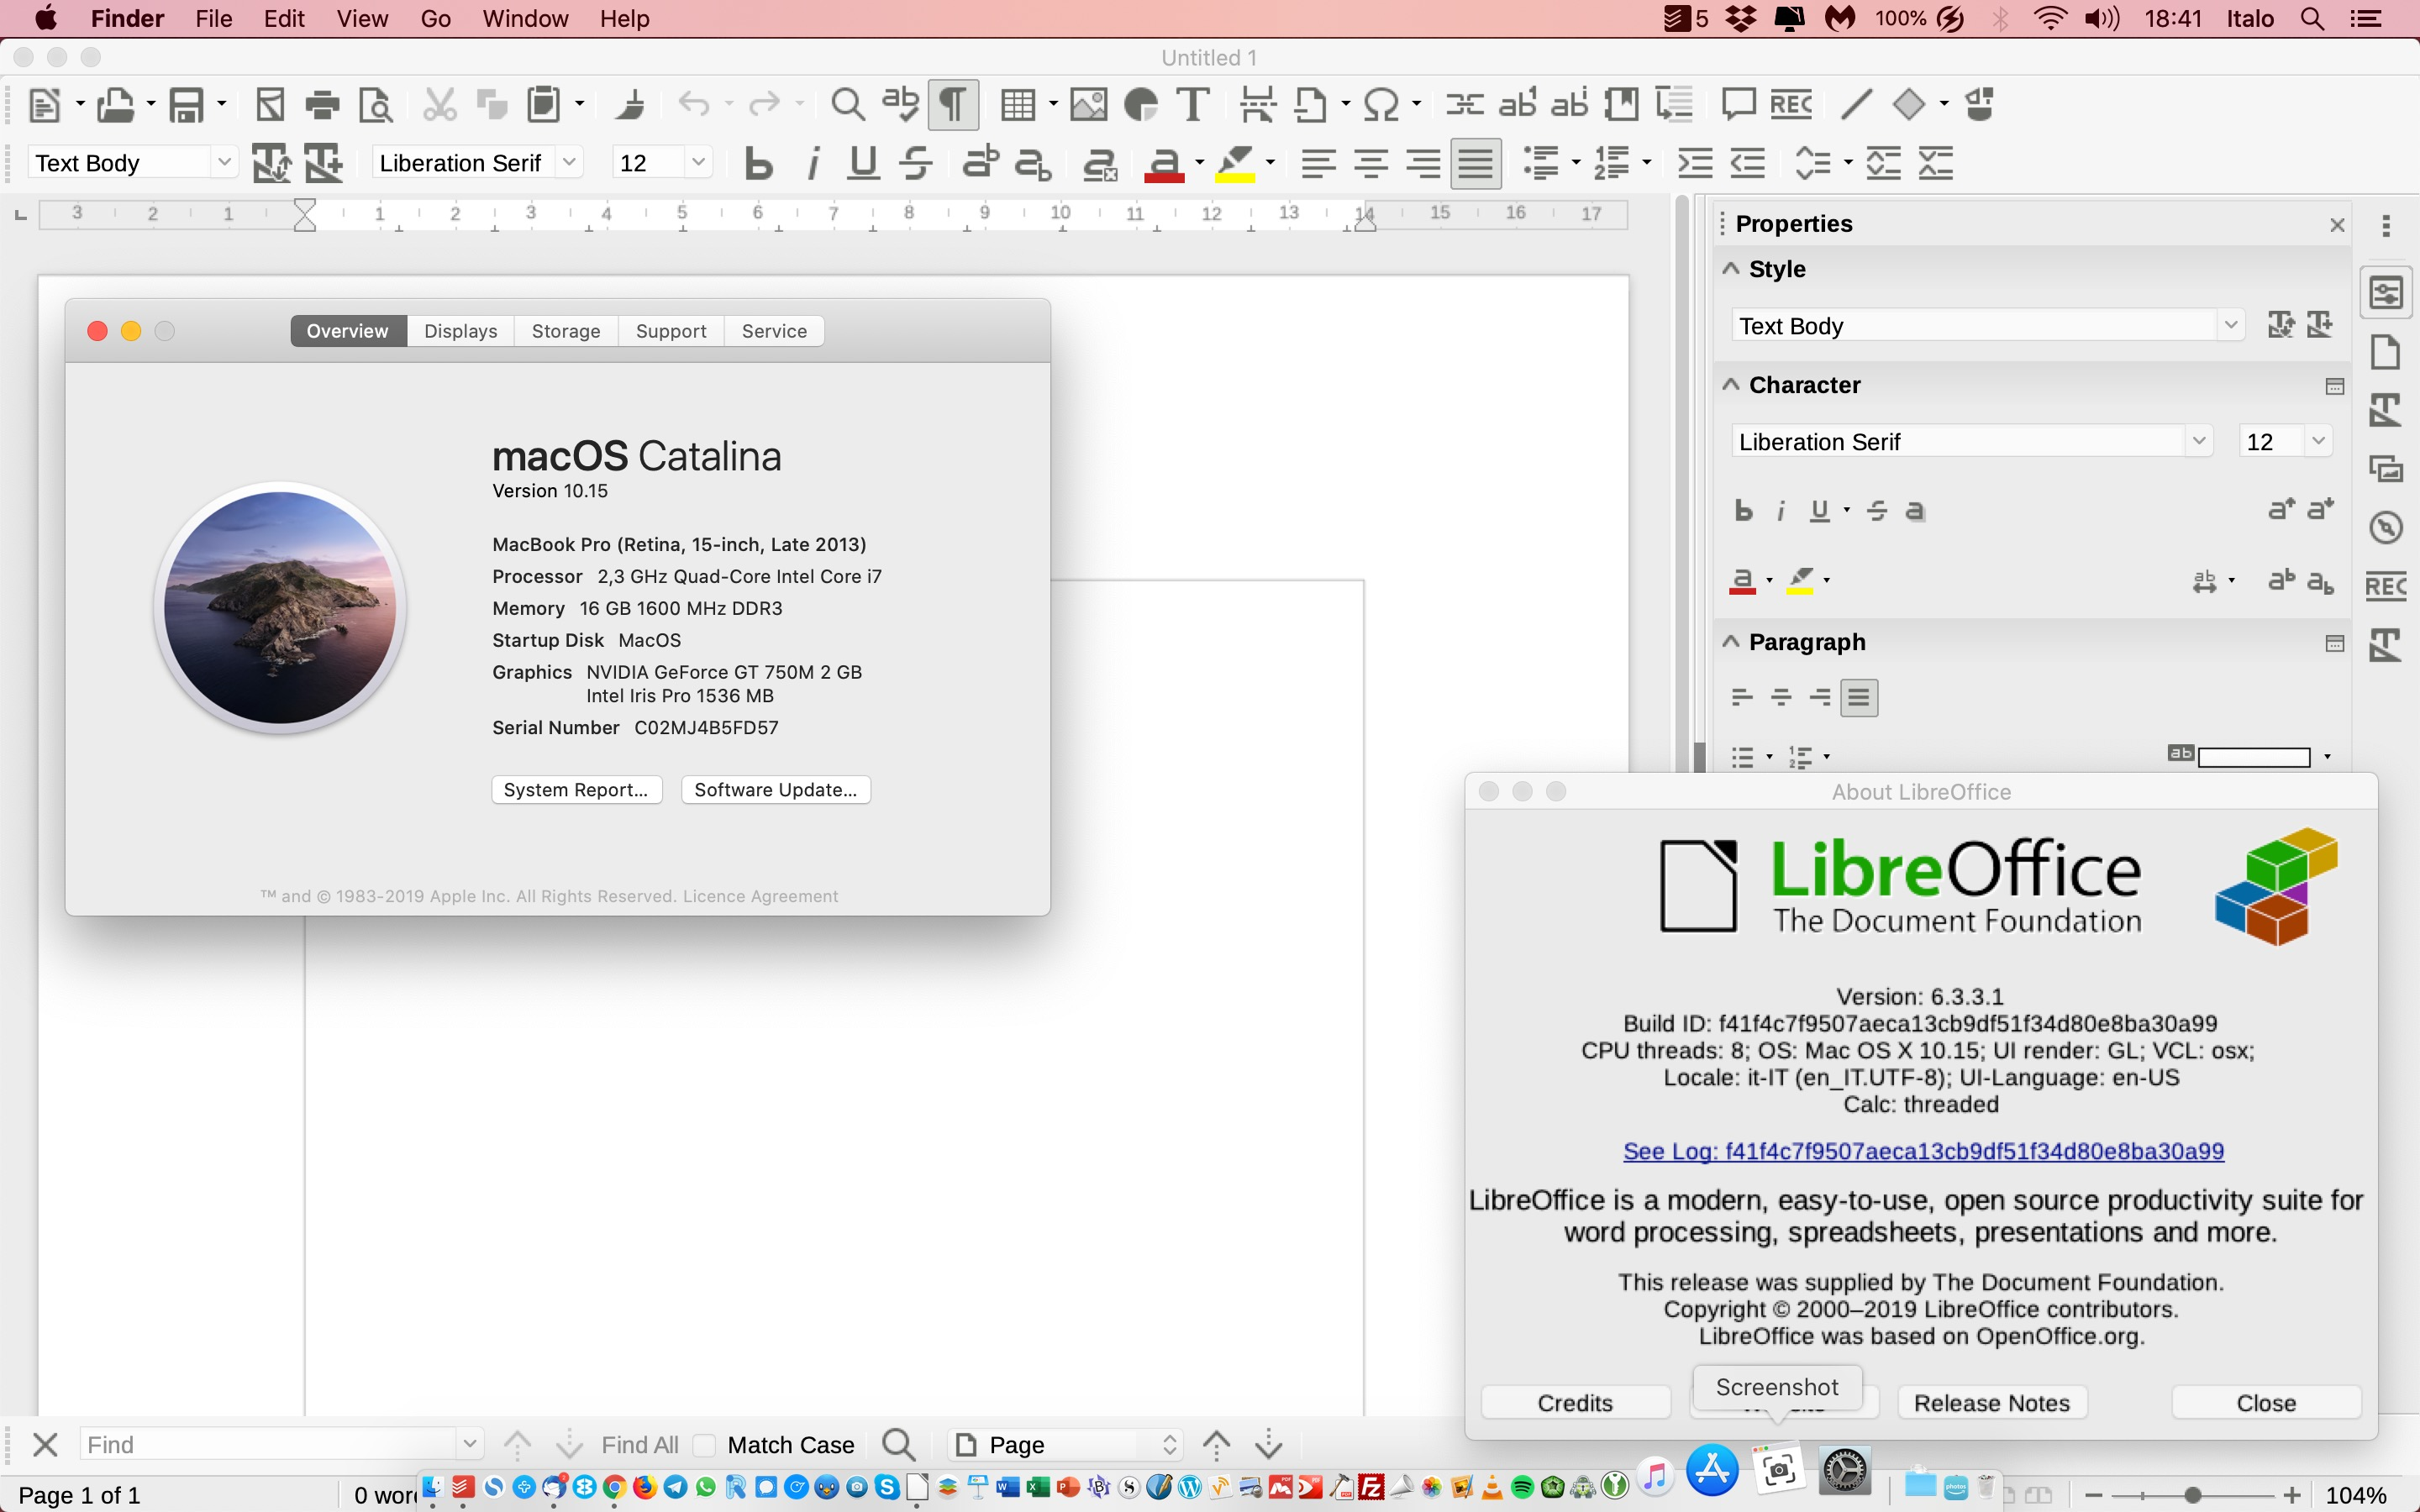 How to Fix LibreOffice Running Issues on macOS Catalina